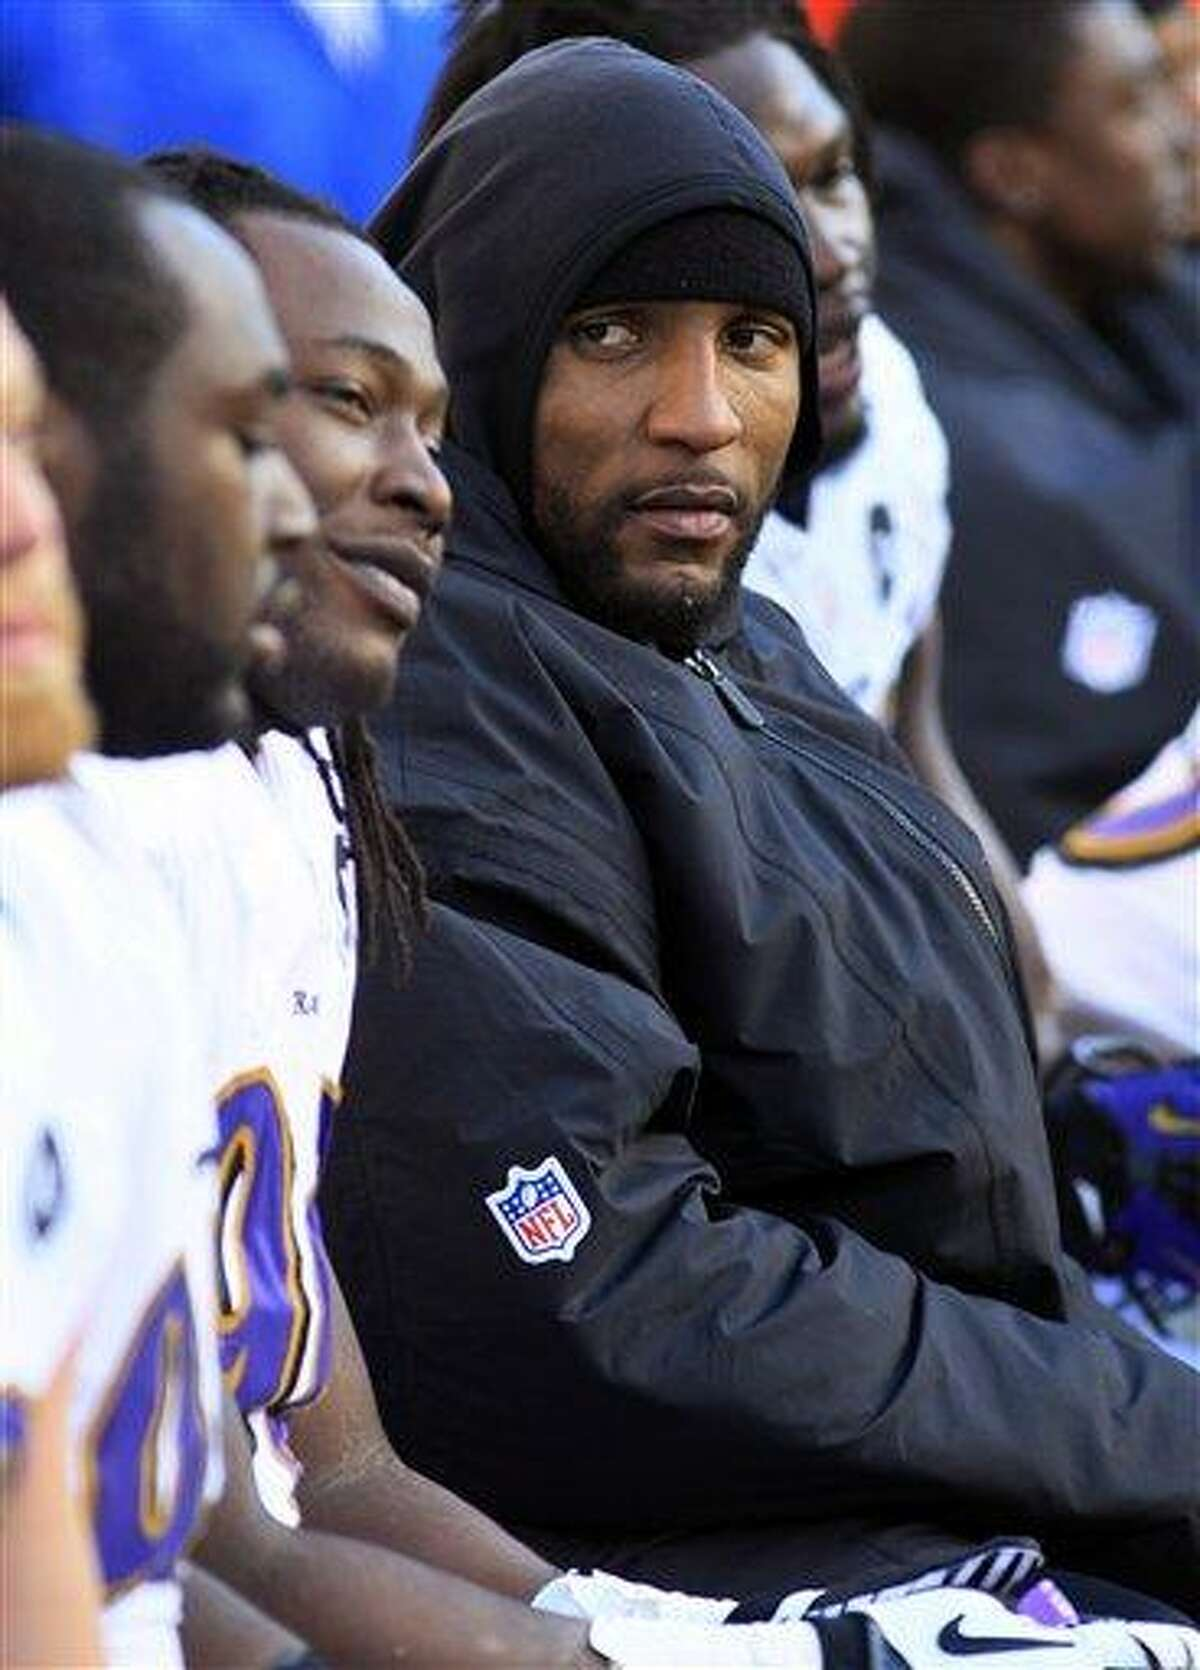 Baltimore Ravens inside linebacker Ray Lewis sits on the bench in the second half of an NFL football game against the Cincinnati Bengals, Sunday, Dec. 30, 2012, in Cincinnati. (AP Photo/Tom Uhlman)